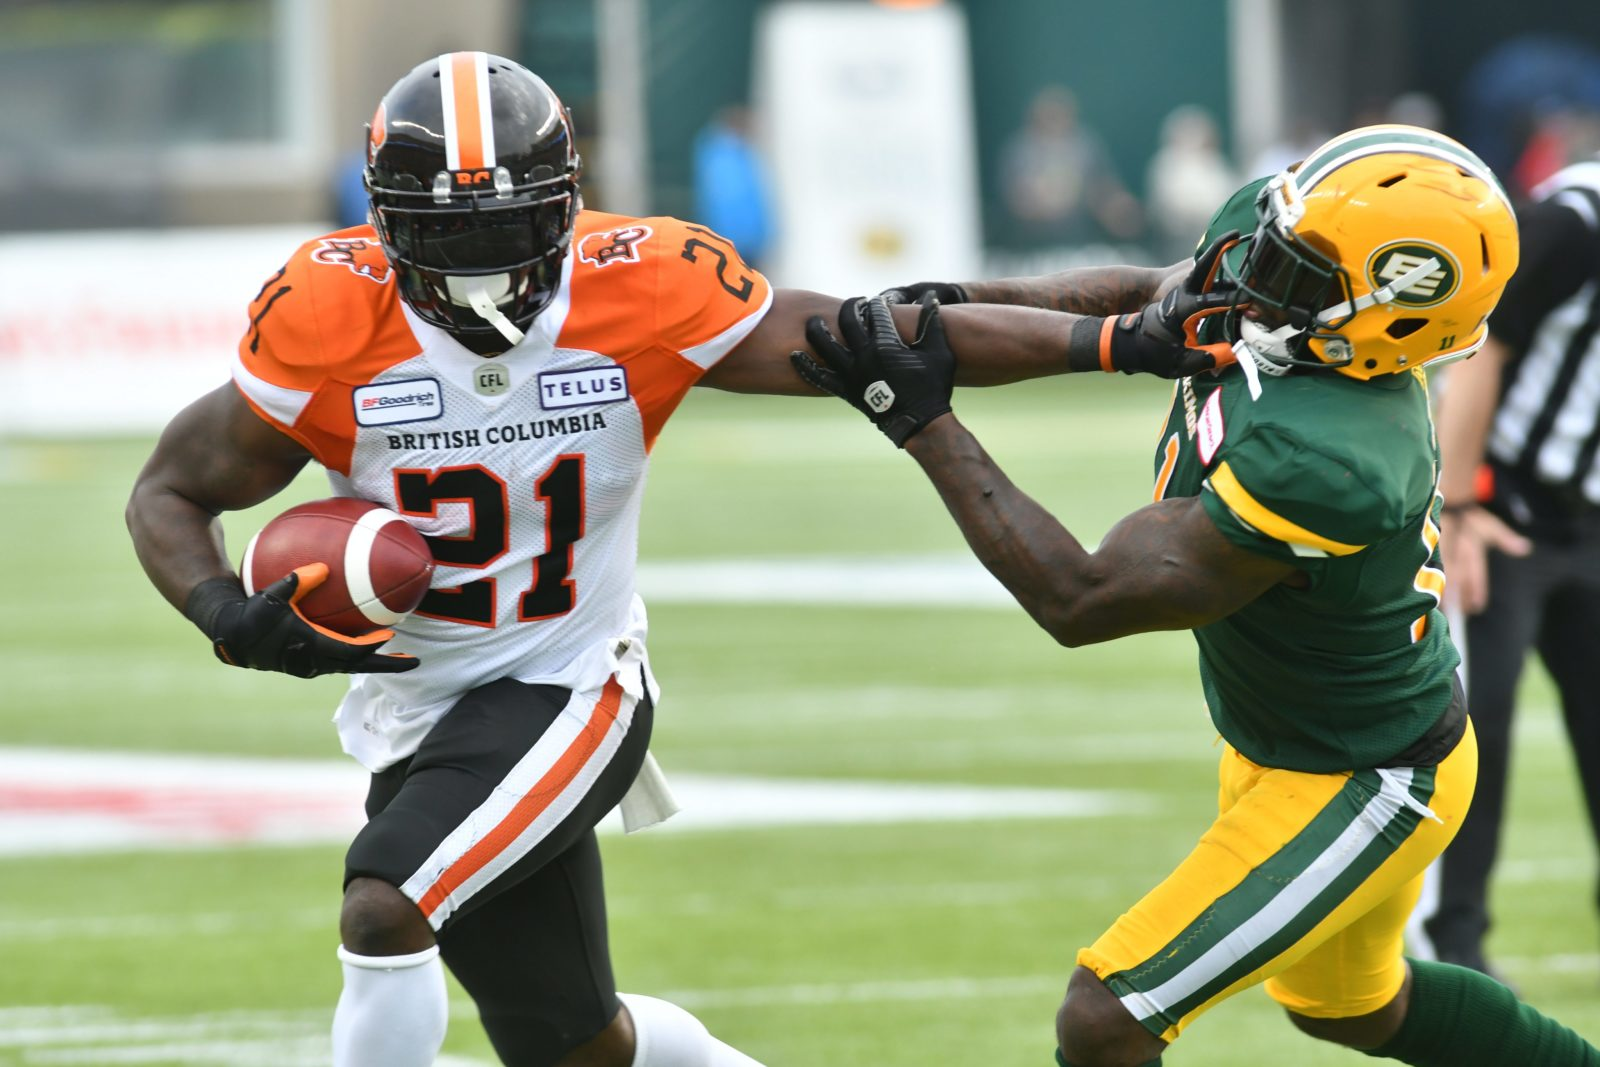 Crossover Clash in the CFL